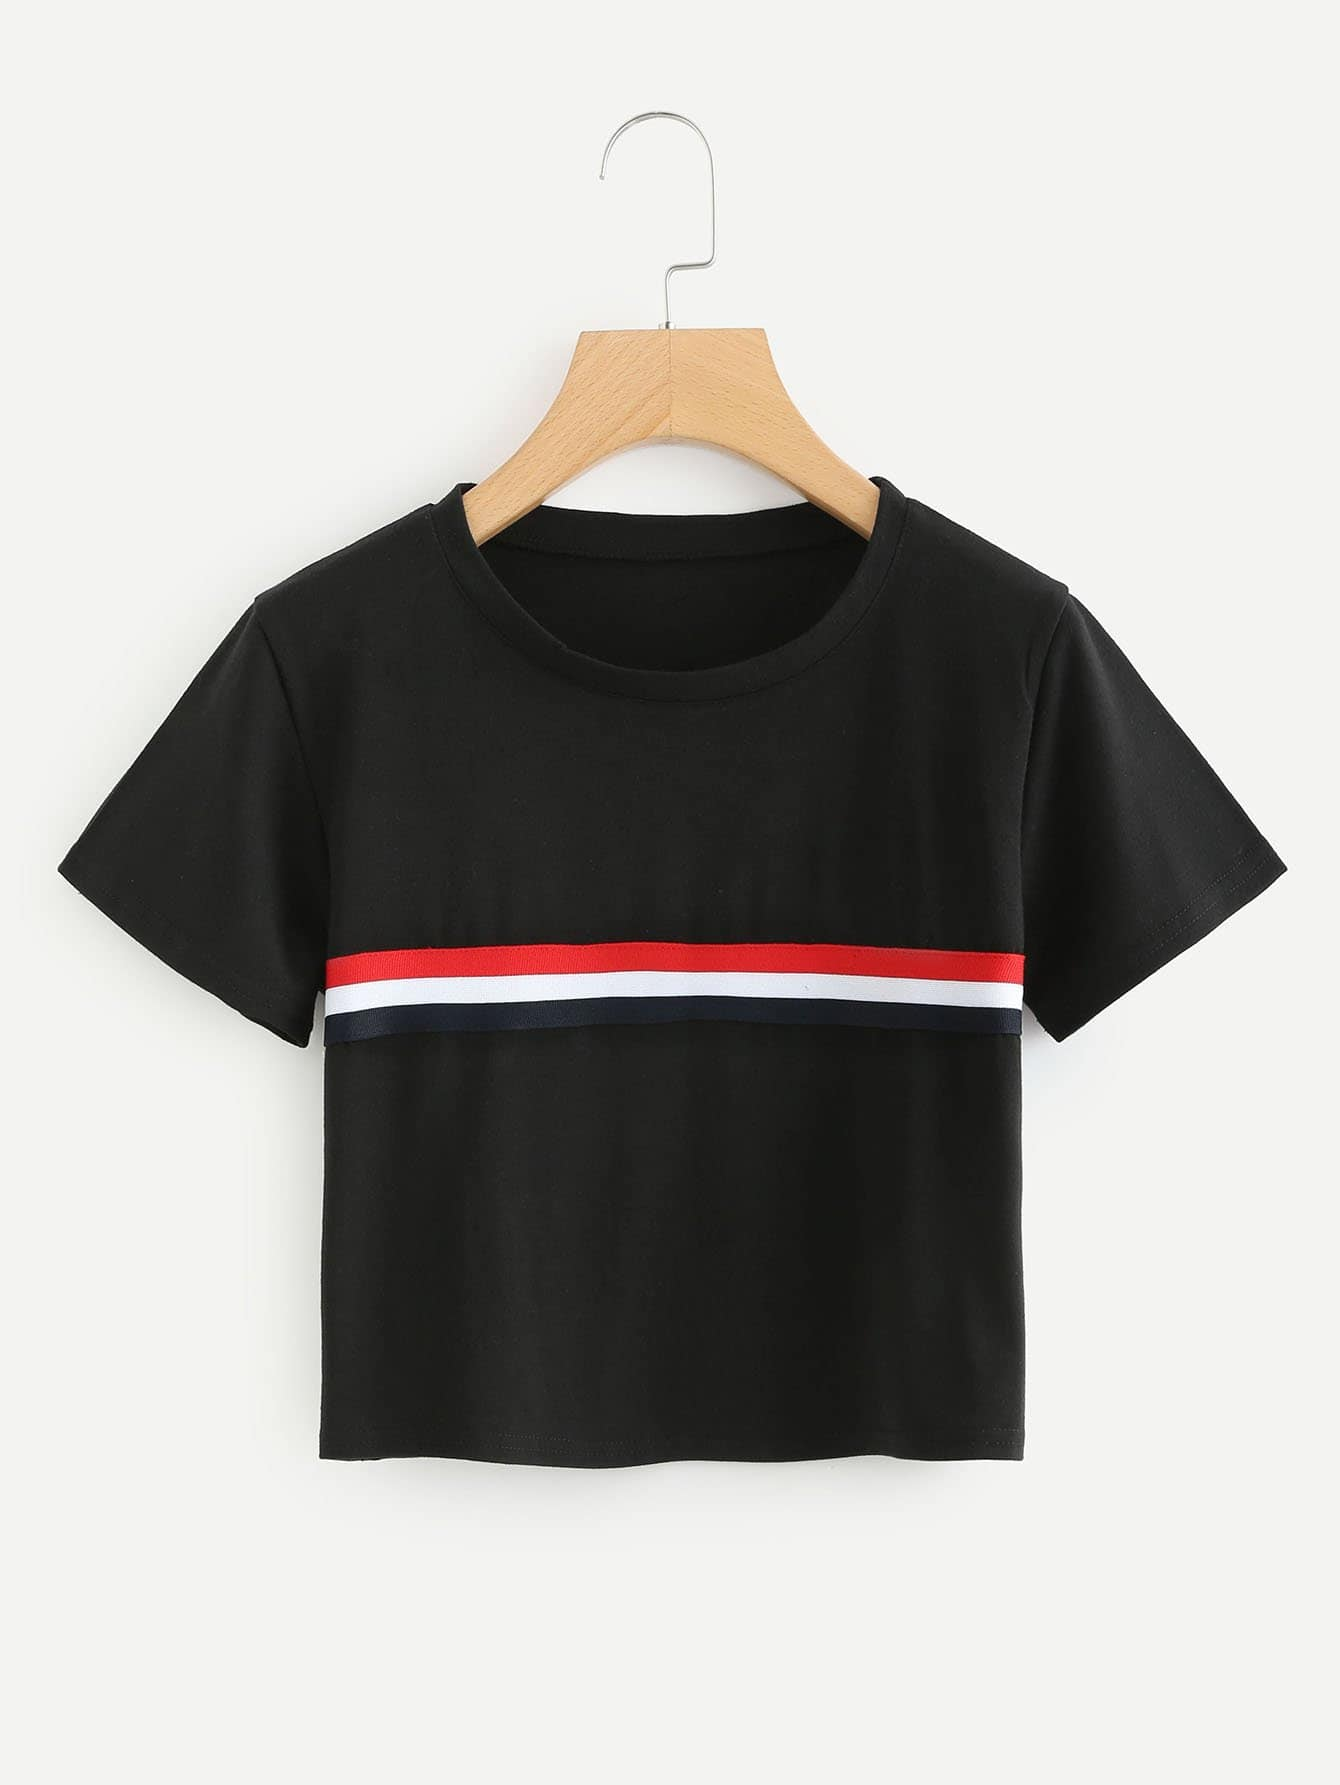 Striped Tape Detail Crop Tee striped tape detail crop tee